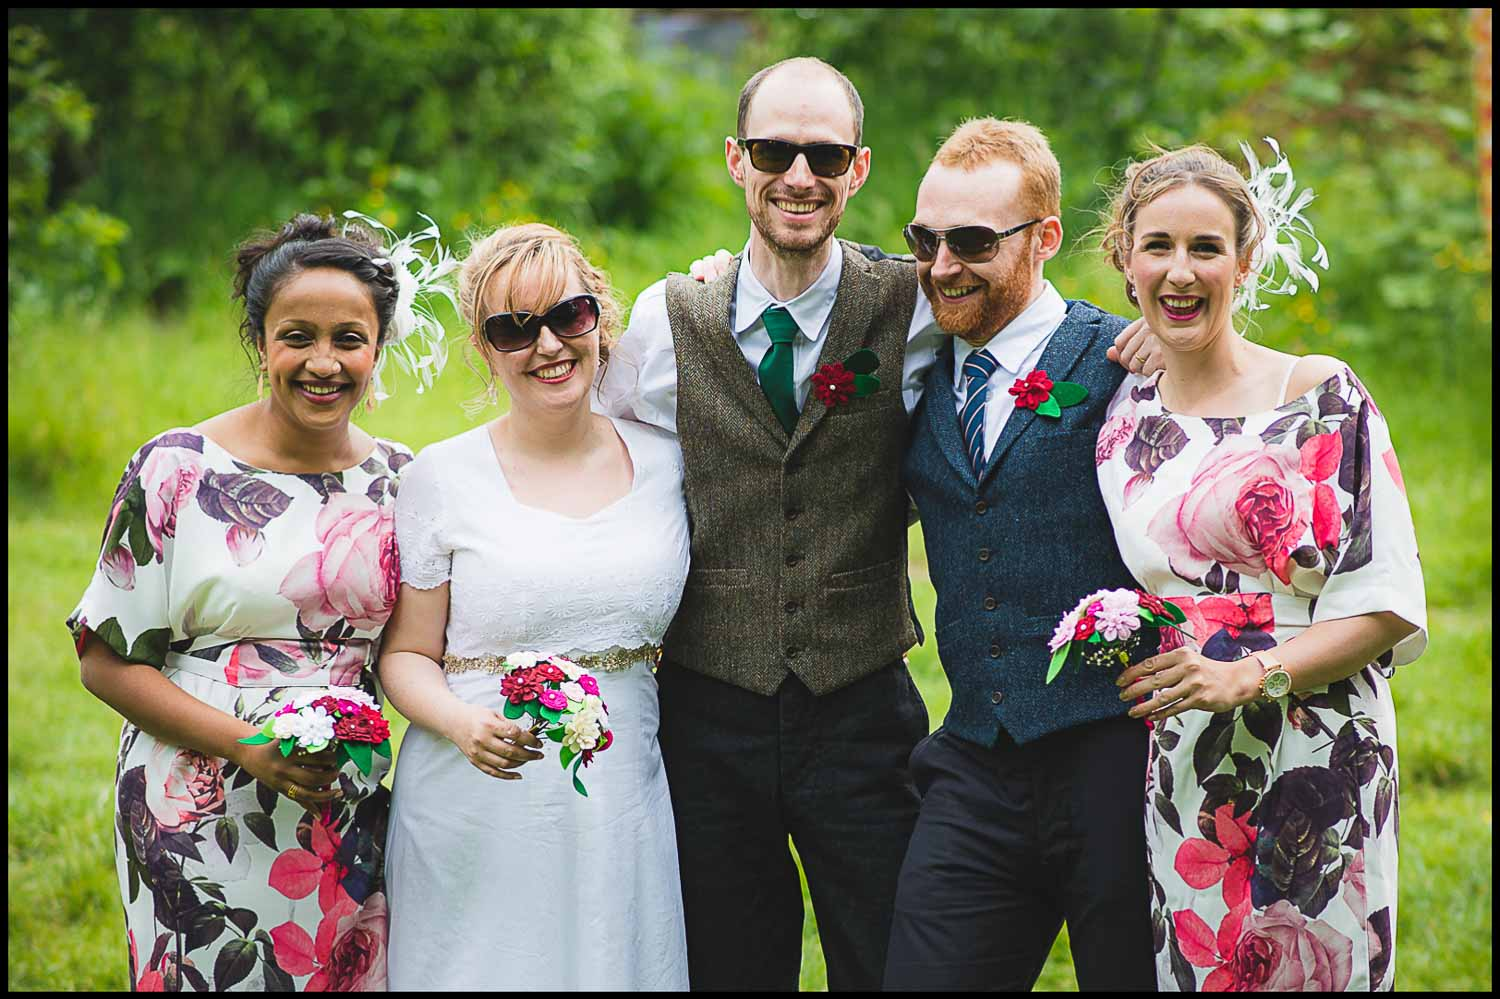 wedding-photographers-bristol.jpg